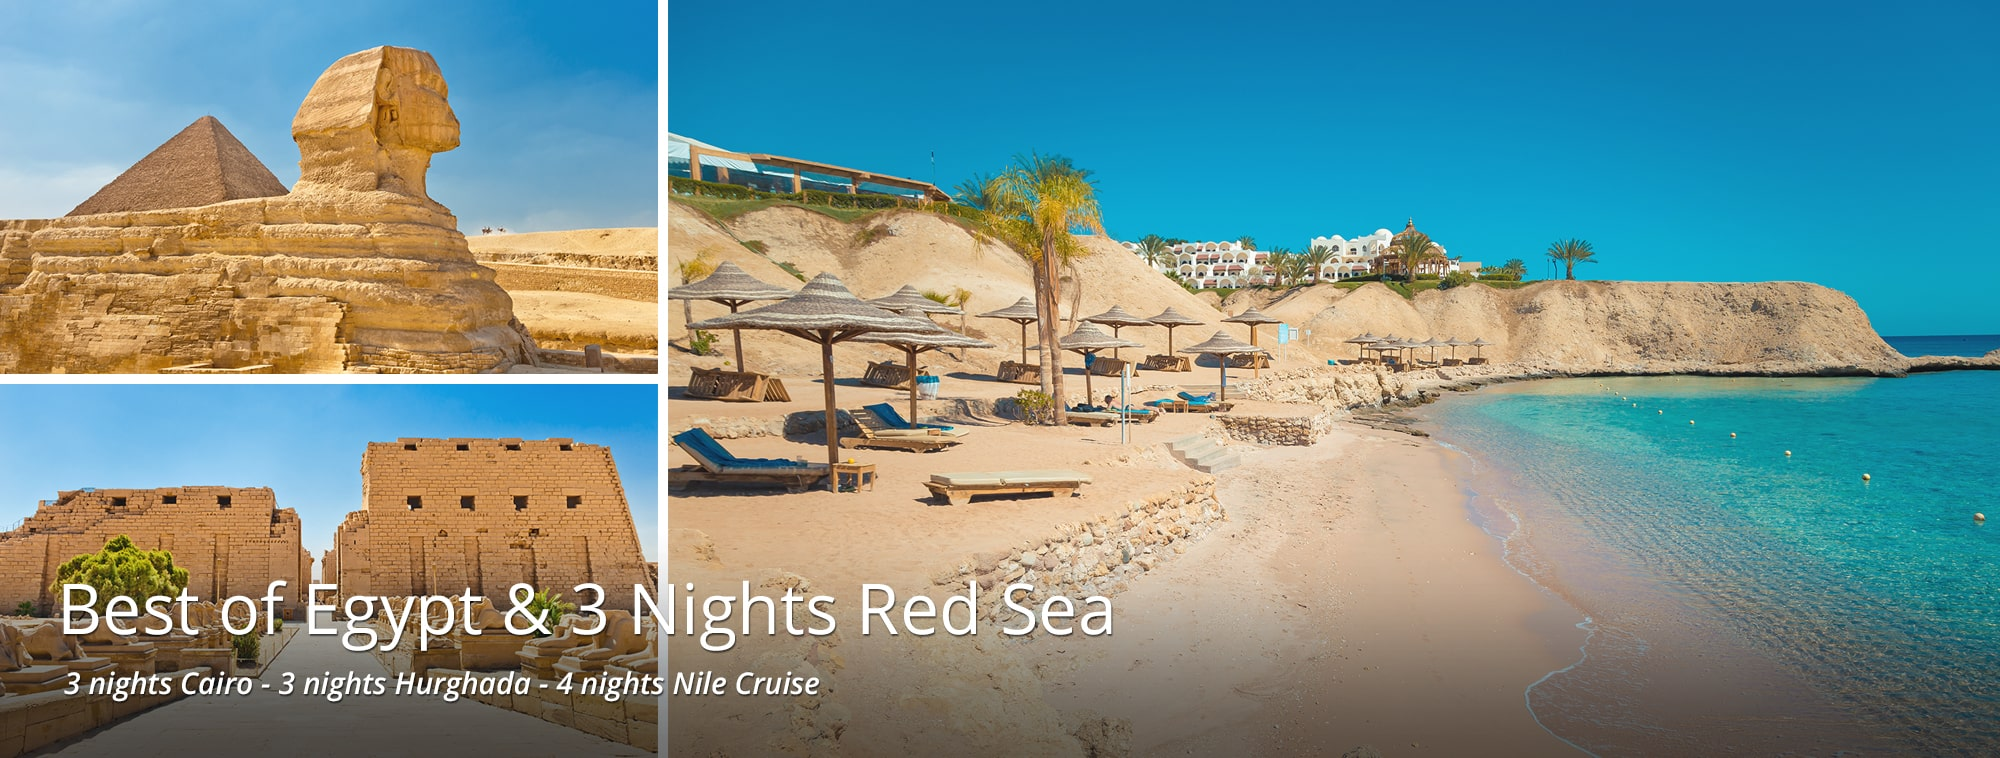 Best of Egypt & 3 Nights Red Sea Tour Banner